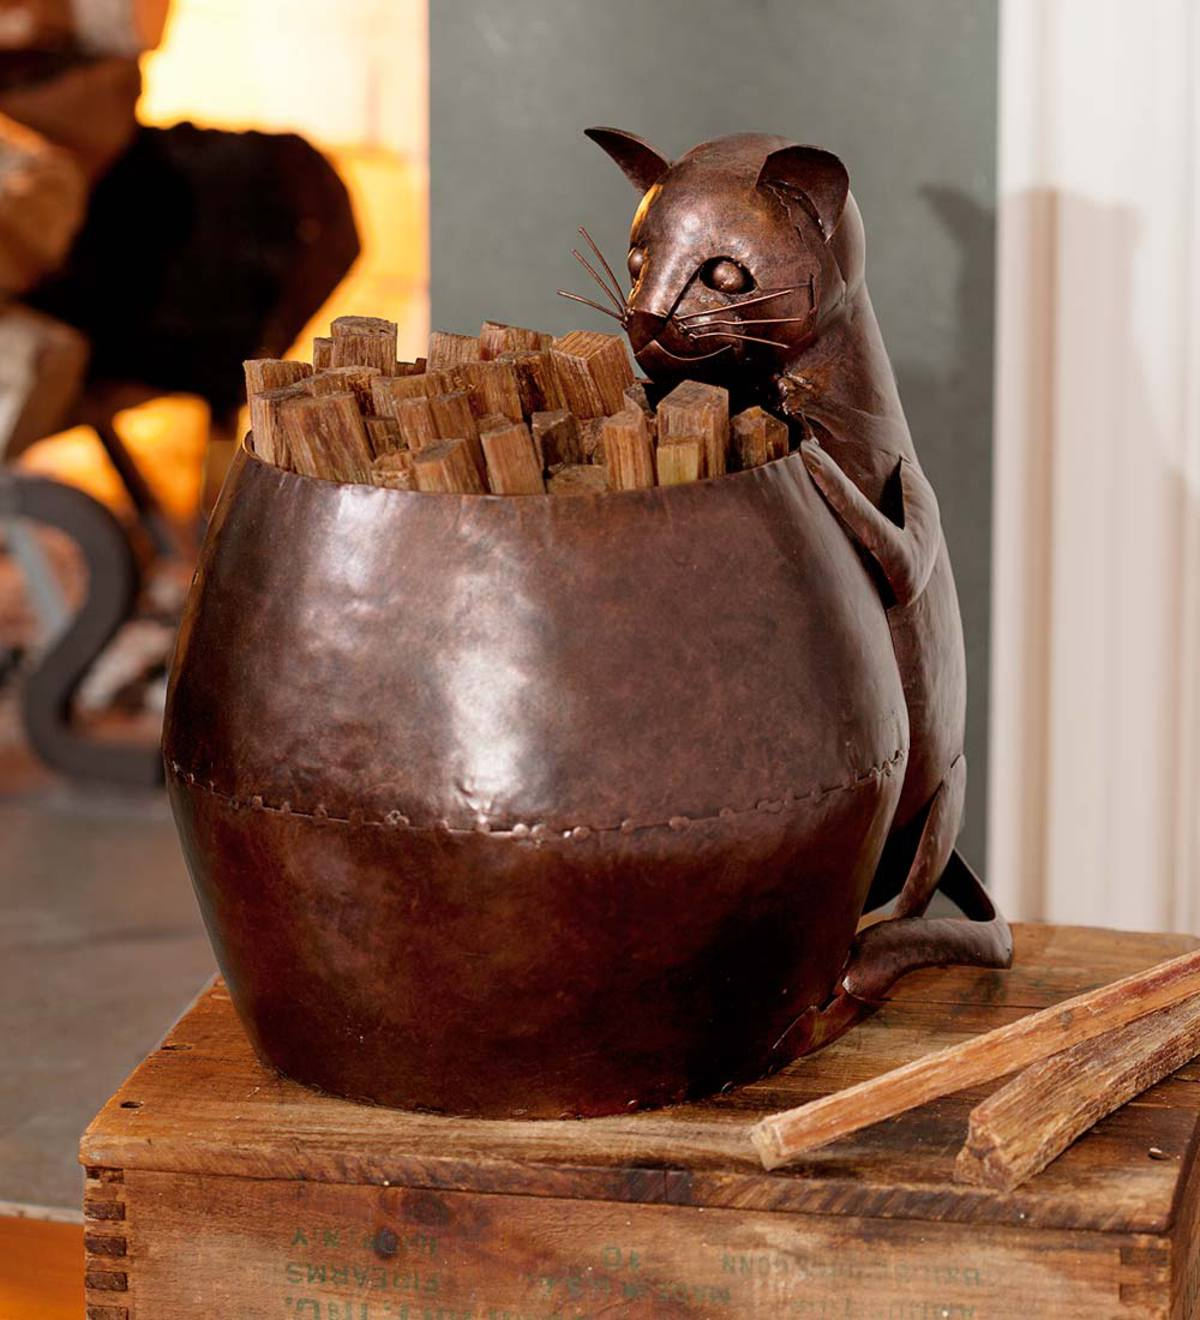 Metal Cat Fatwood Holder with 5 lbs. of Fatwood